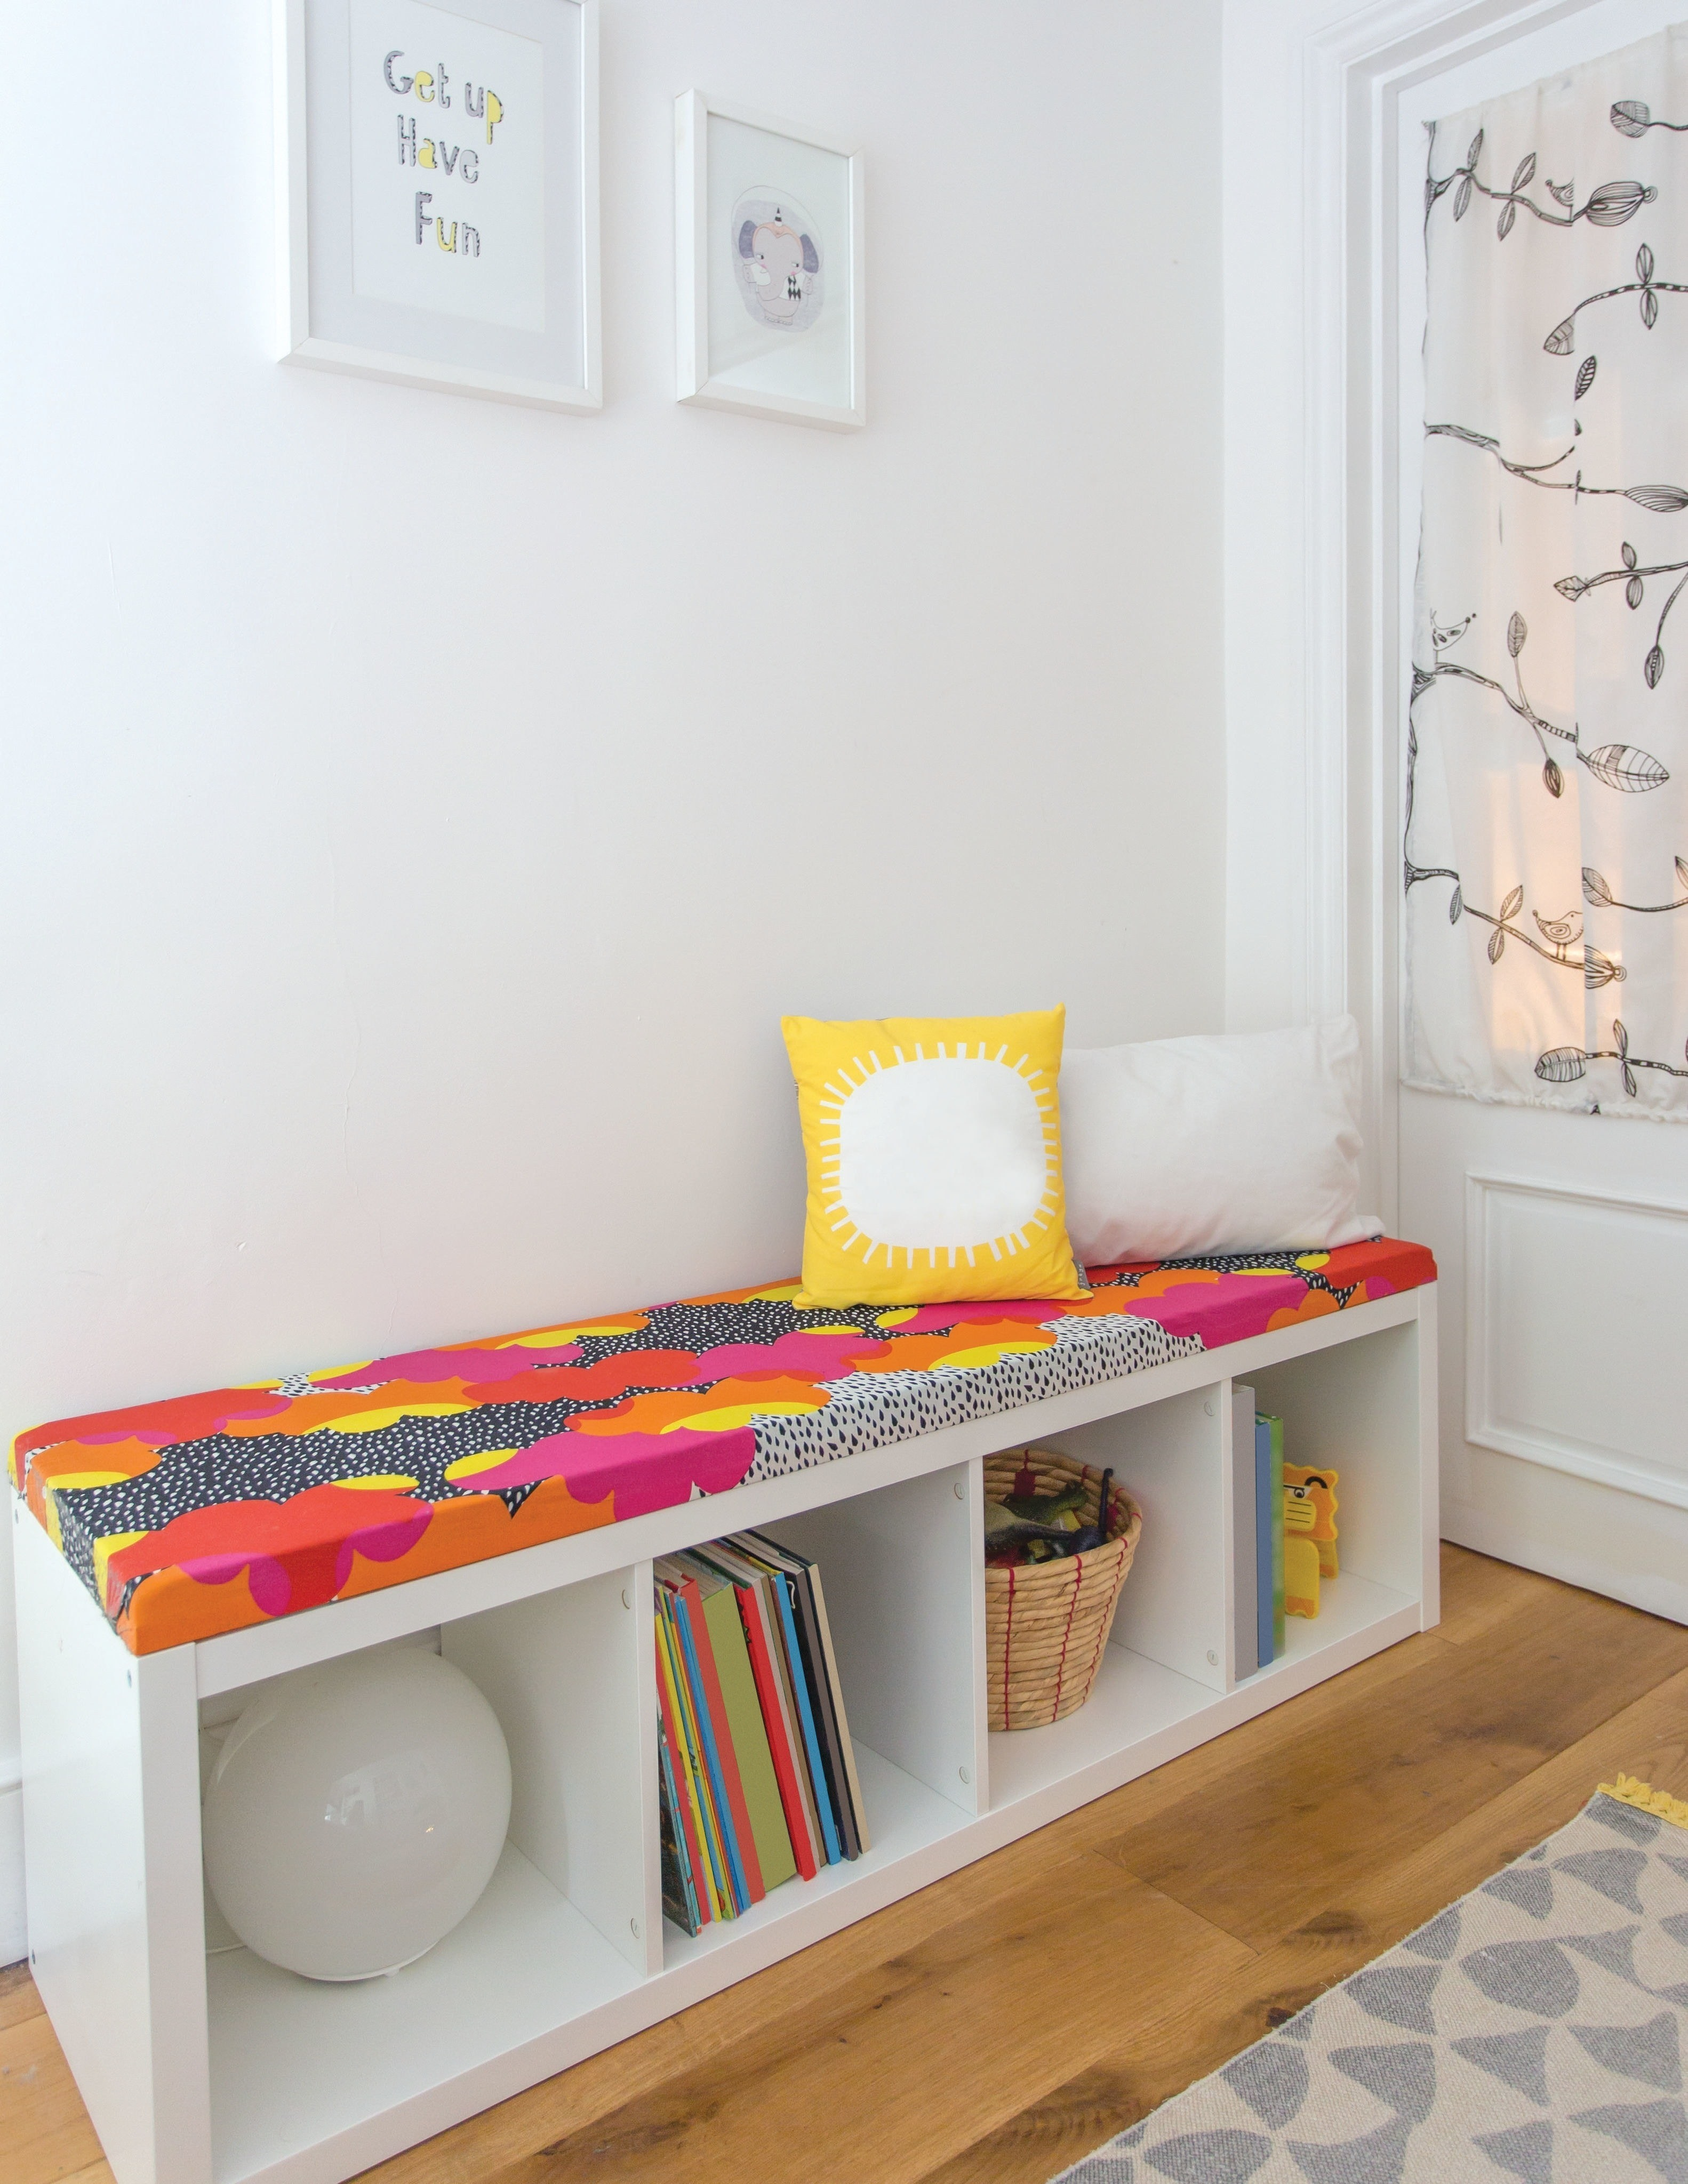 duchesses a repurposed dresser and reading bench into img dukes